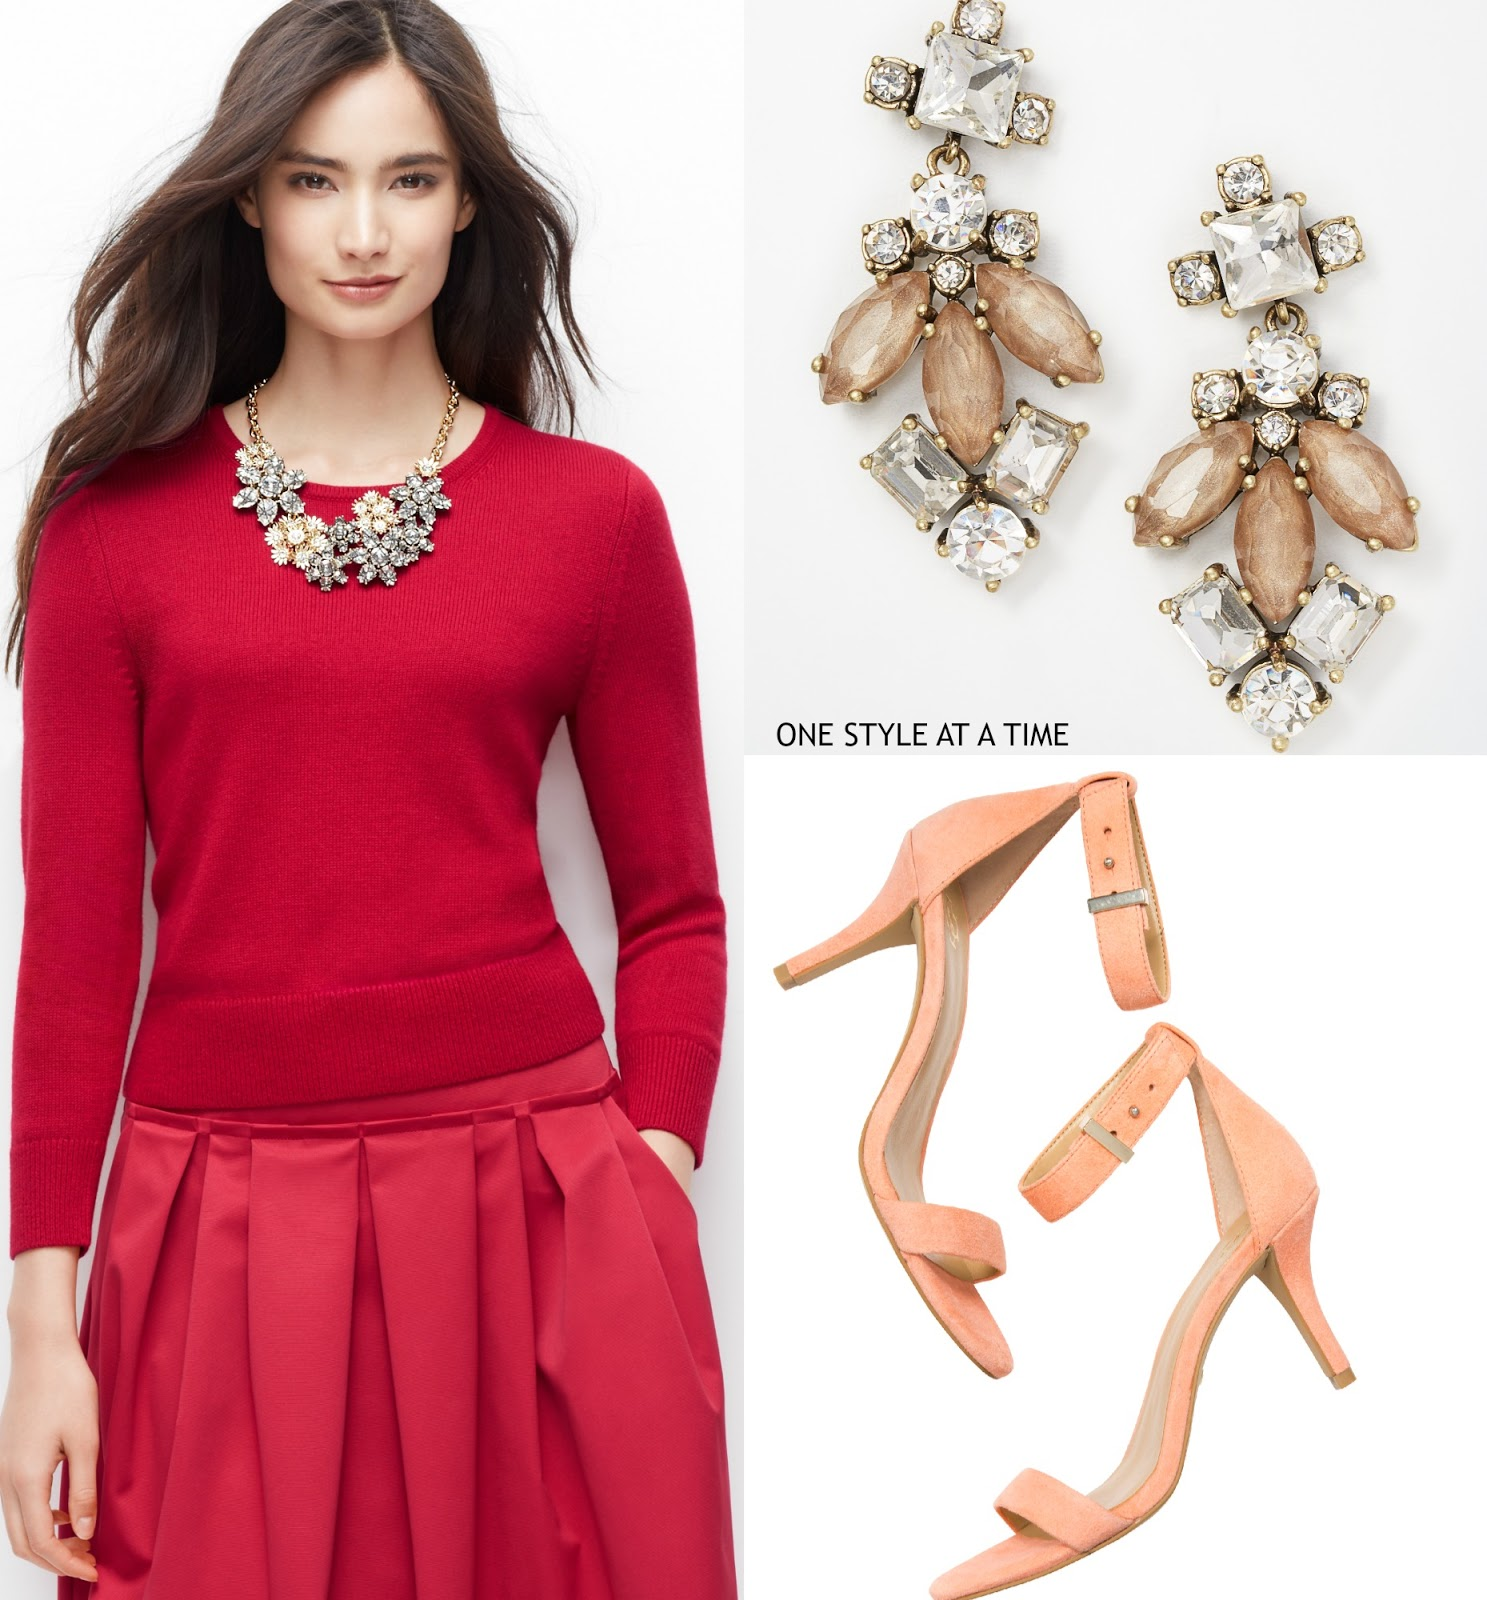 VALENTINE'S GLAM WITH ANN TAYLOR